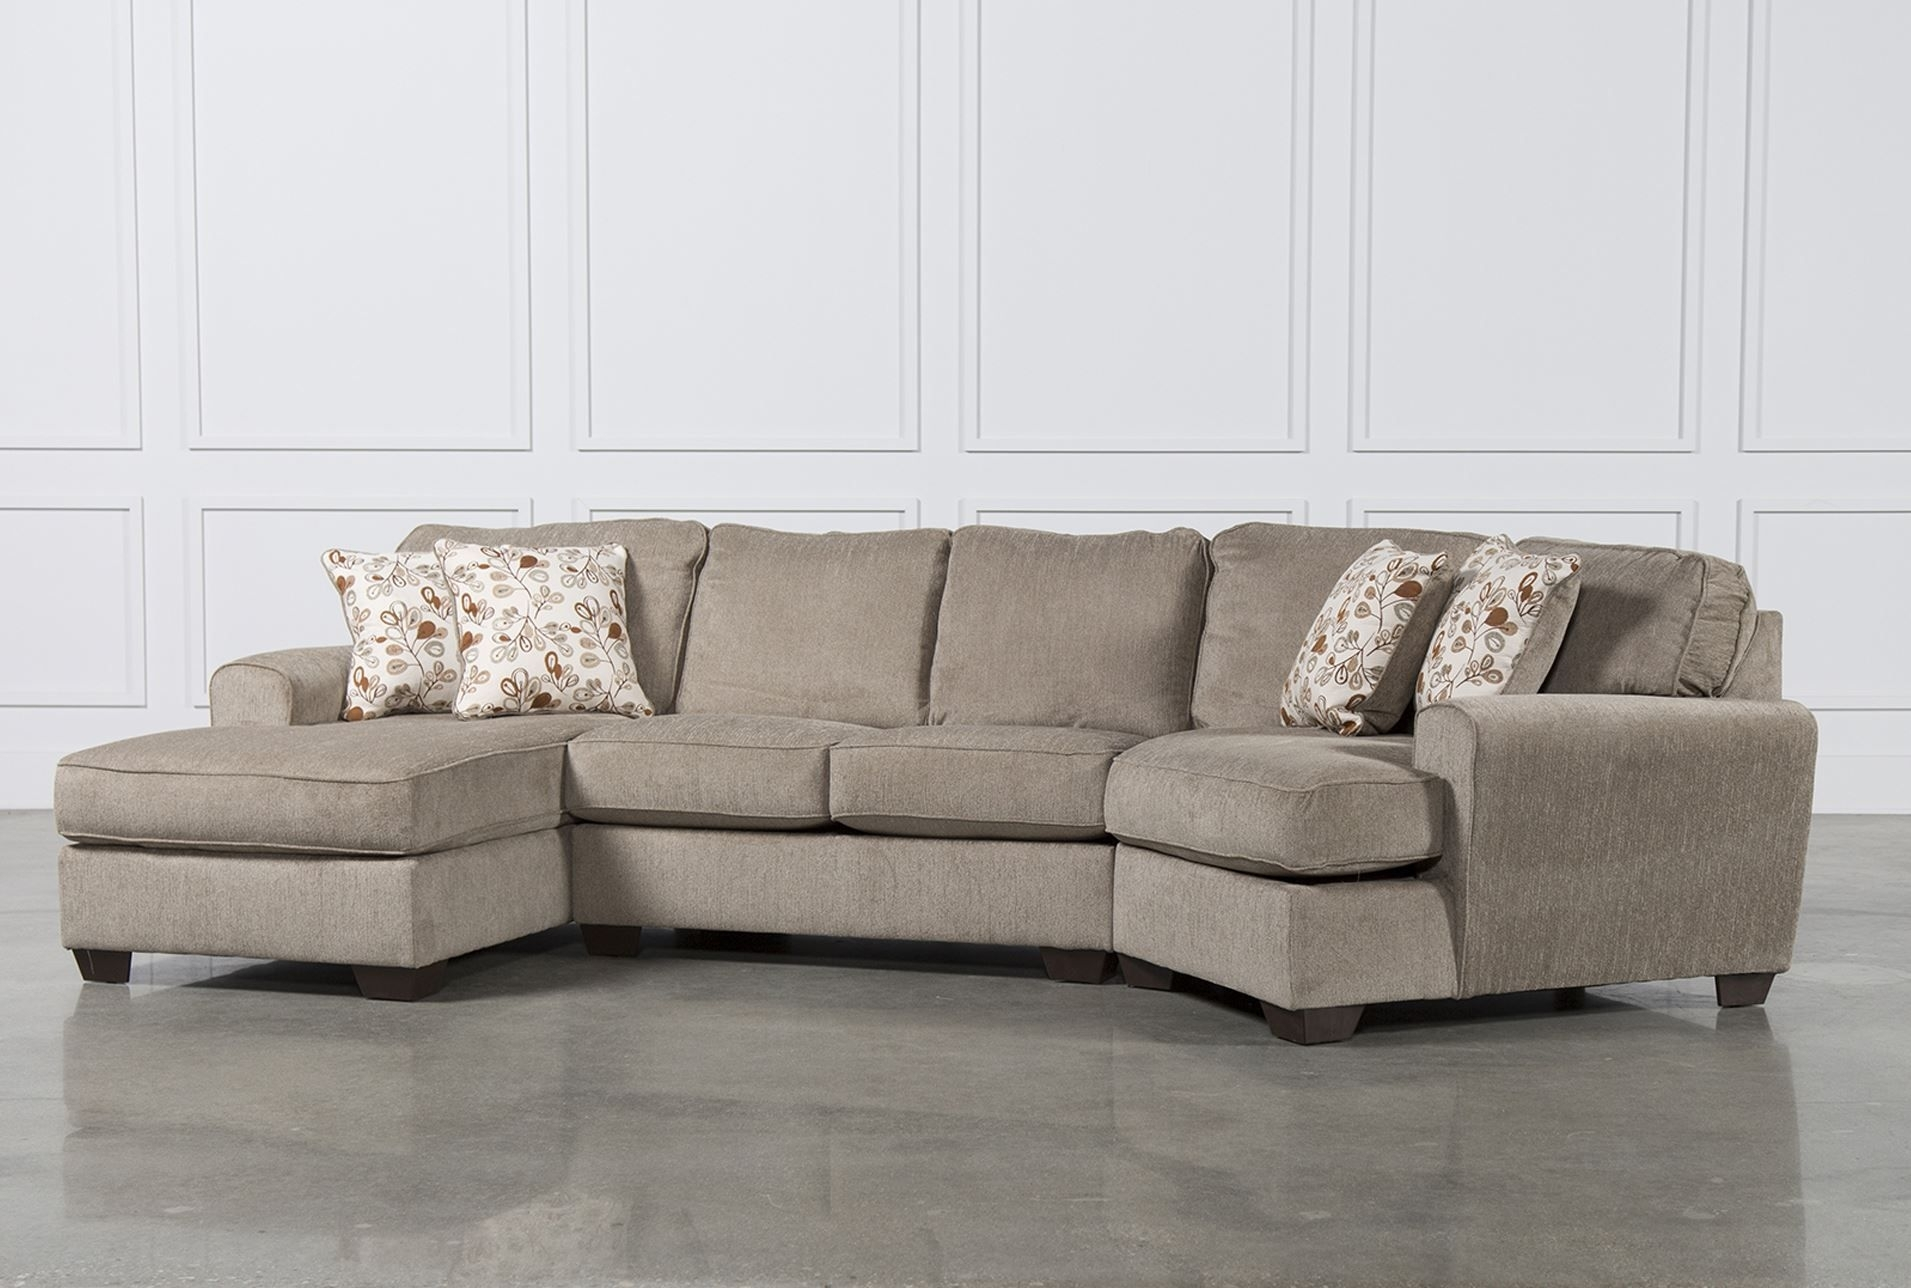 Patola Park 3 Piece Cuddler Sectional W/laf Corner Chaise within Cuddler Sectional Sofas (Image 9 of 10)